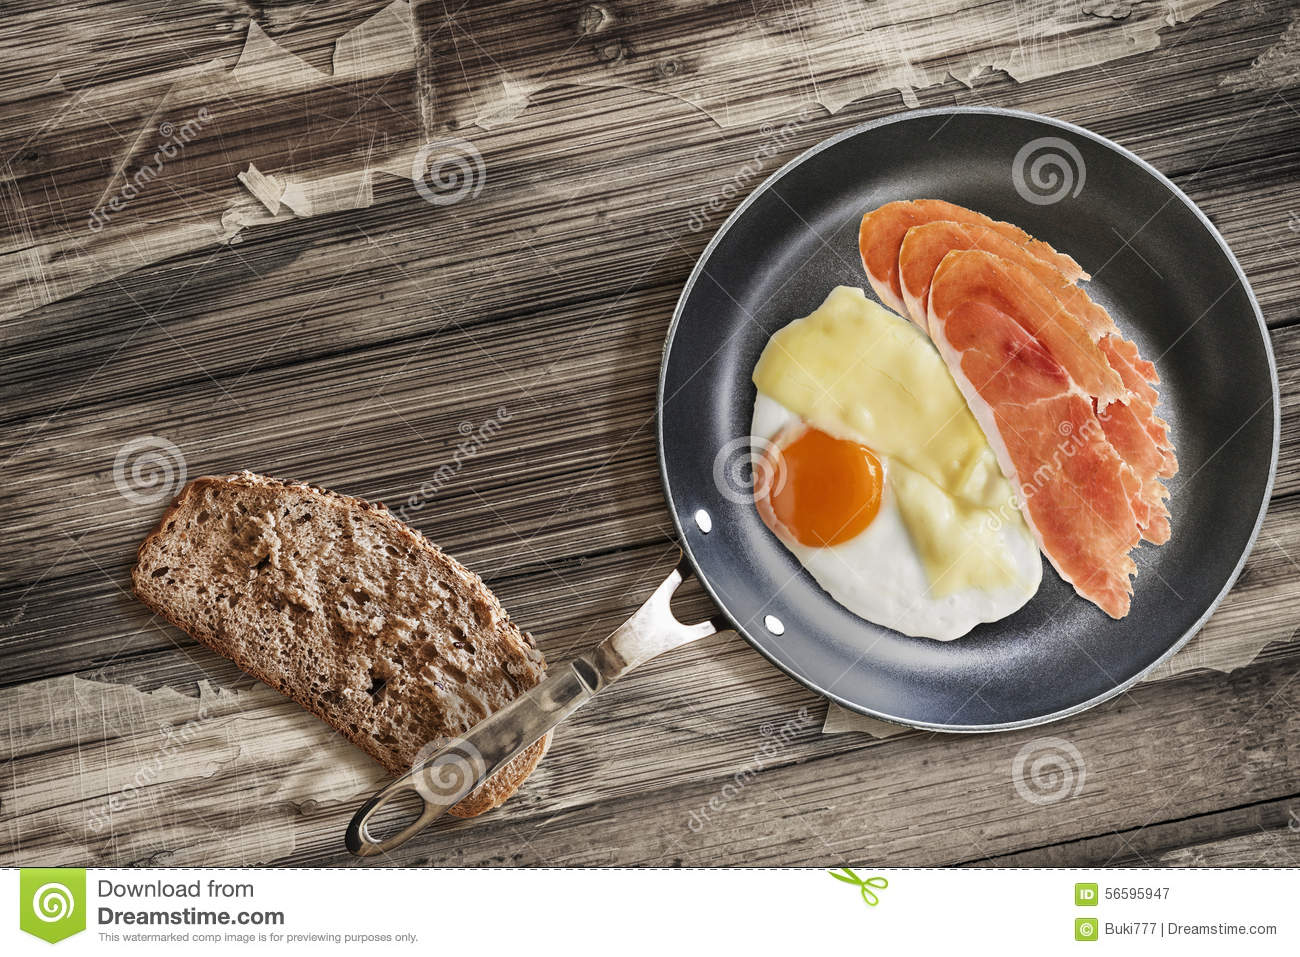 Prosciutto Rashers With Fried Egg In Frying Pan With Slice